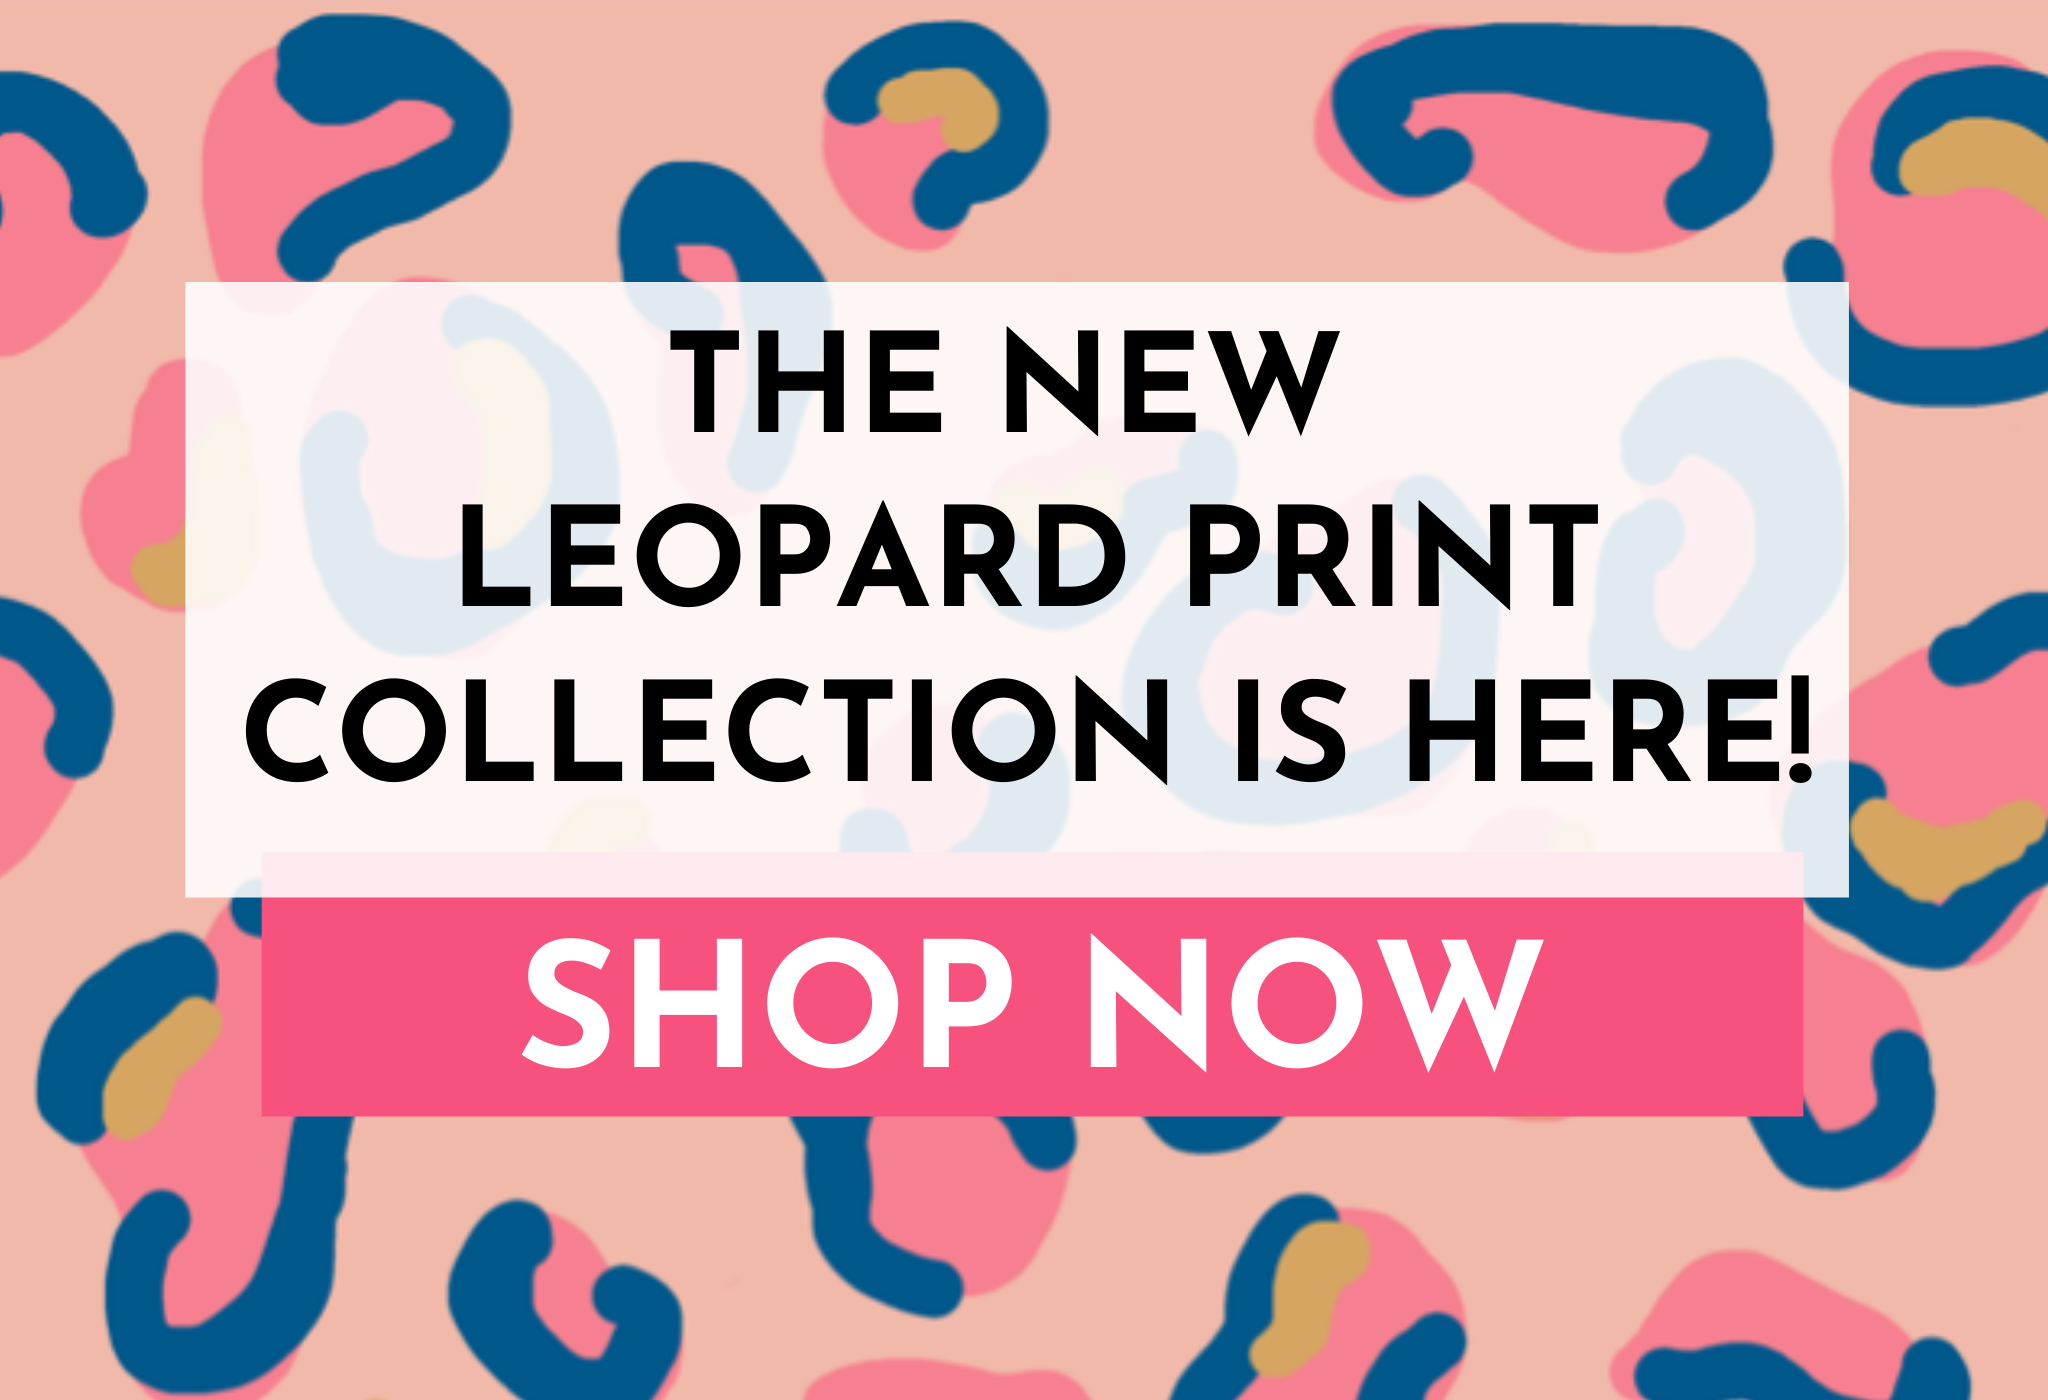 Kin and Castle leopard print collection click thru